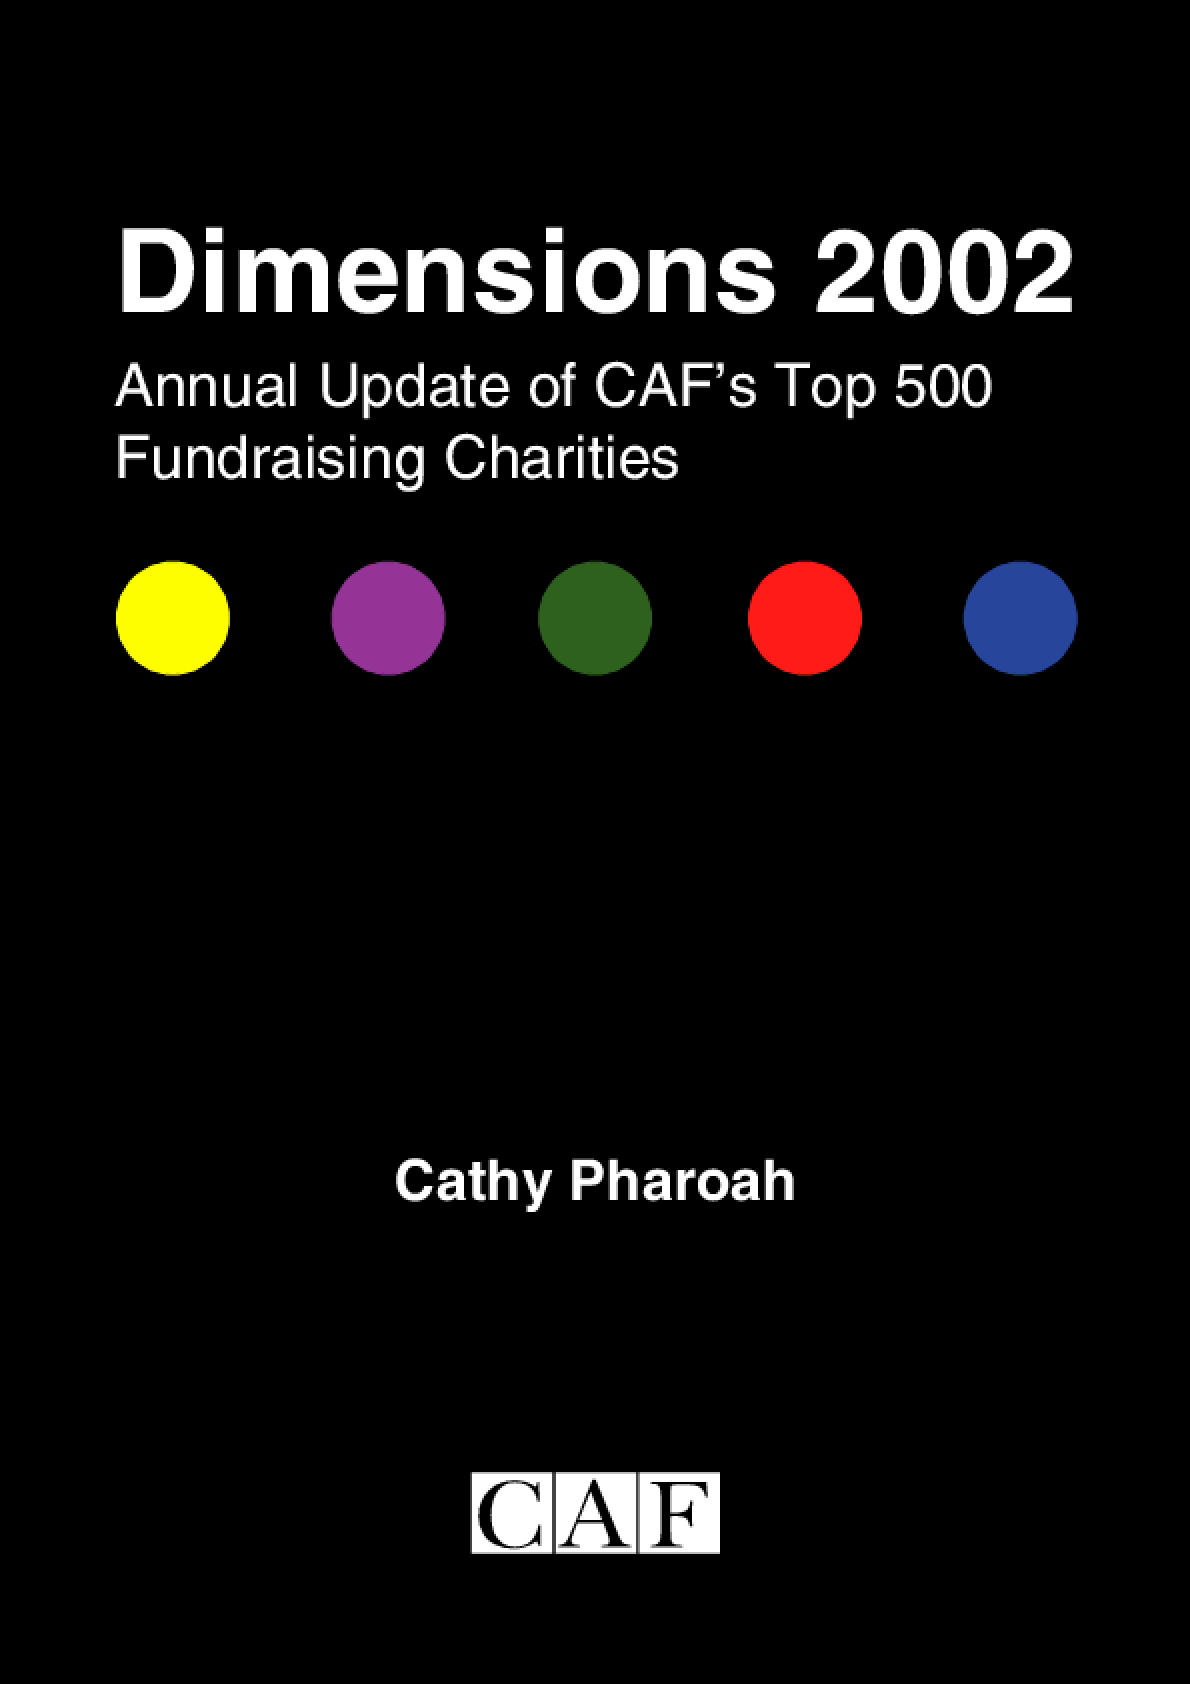 Dimensions 2002: Annual Update of CAF's Top 500 Fundraising Charities